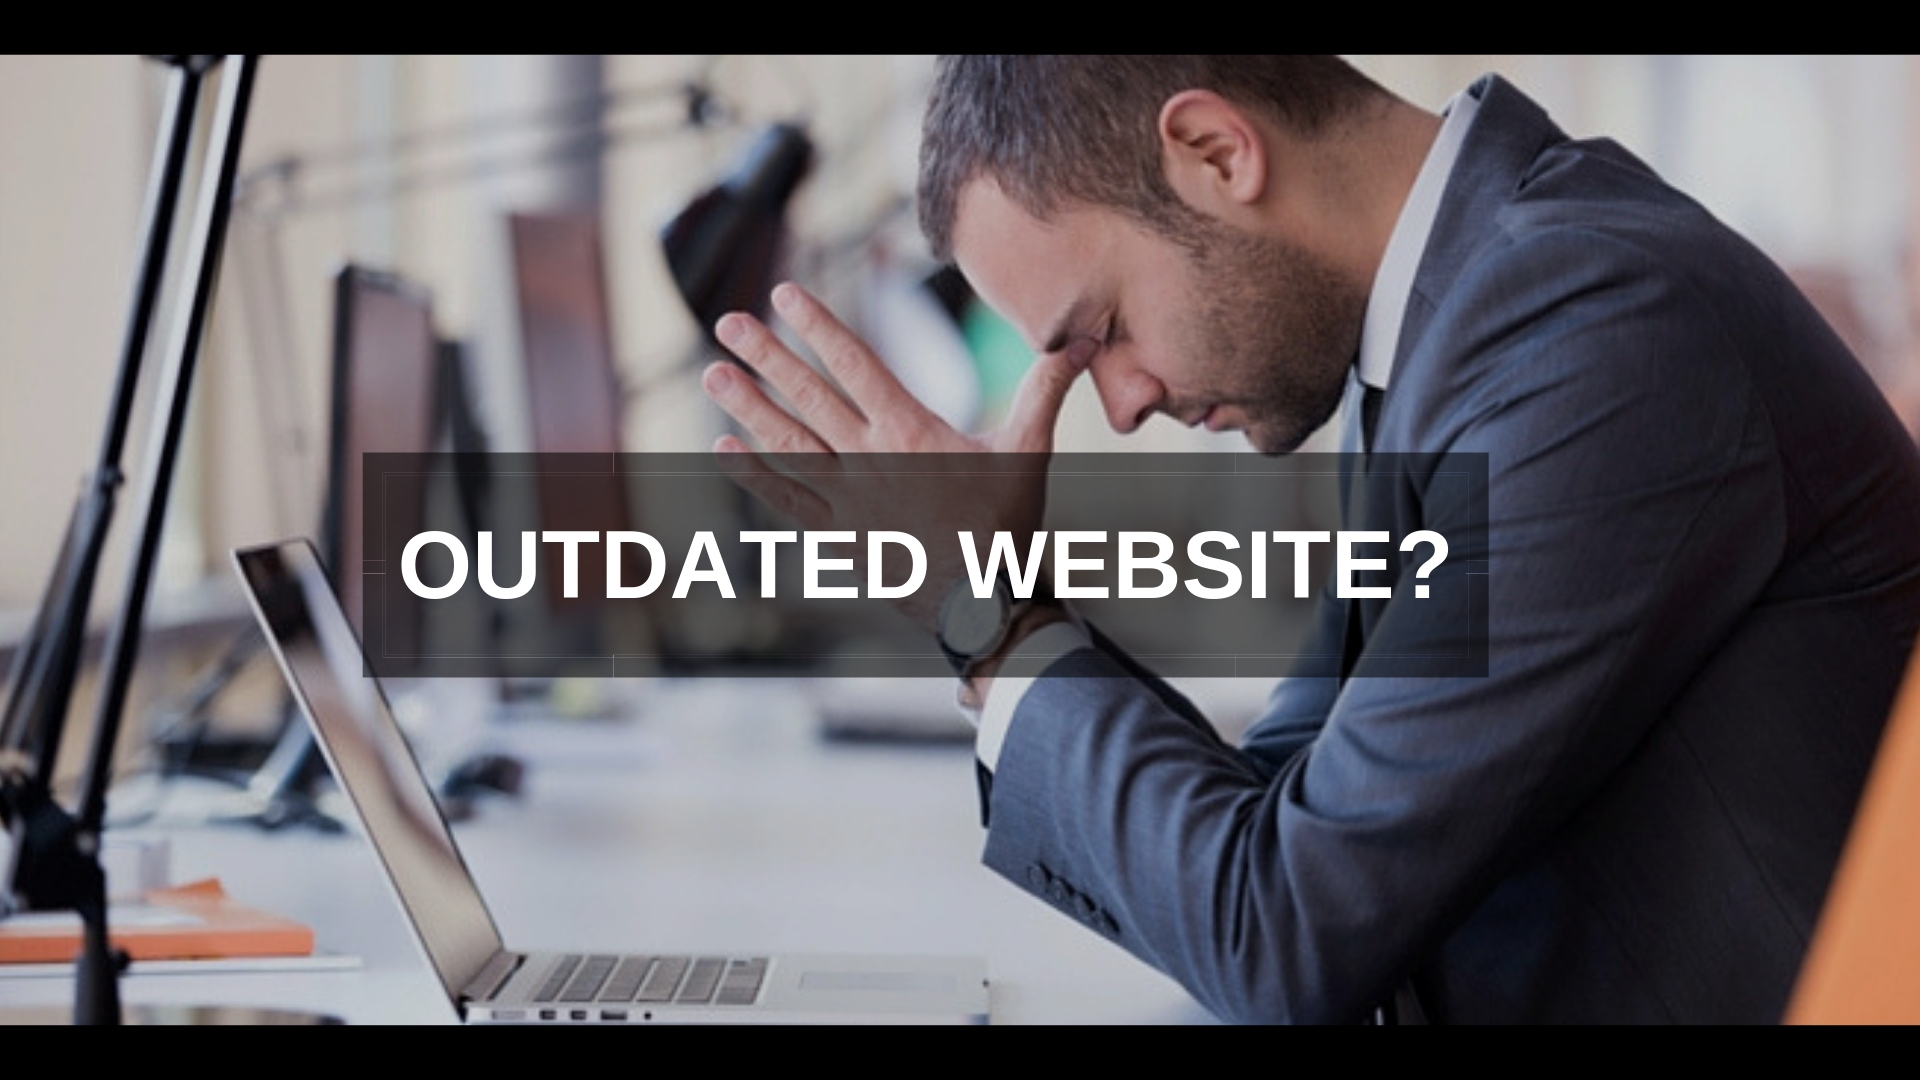 How an Outdated Website can hurt your business?